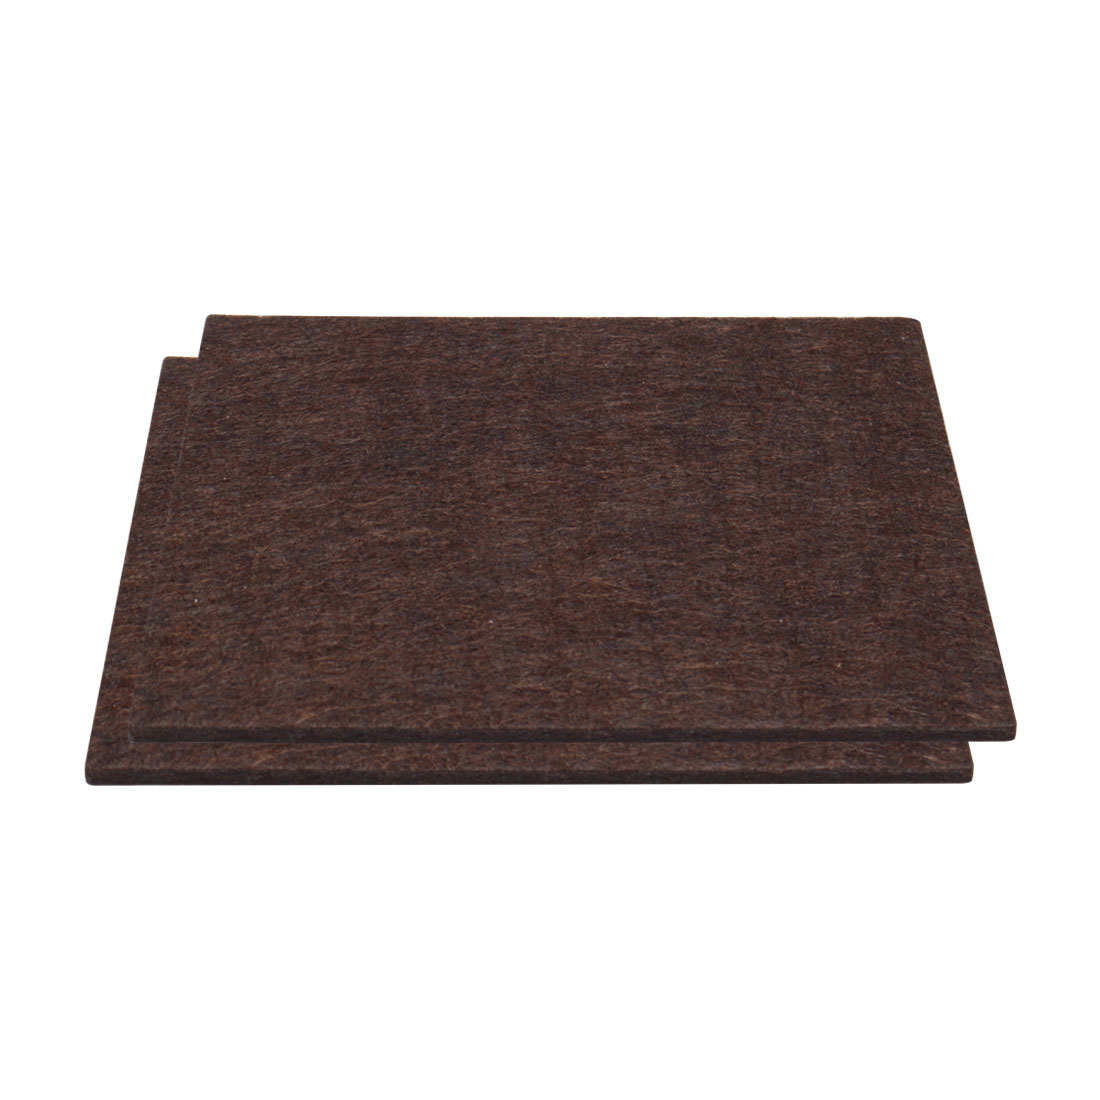 "Furniture Felt Pad Rectangle 5 7/8"" x 4 3/8"" Anti Scratch for Table Brown 2pcs"